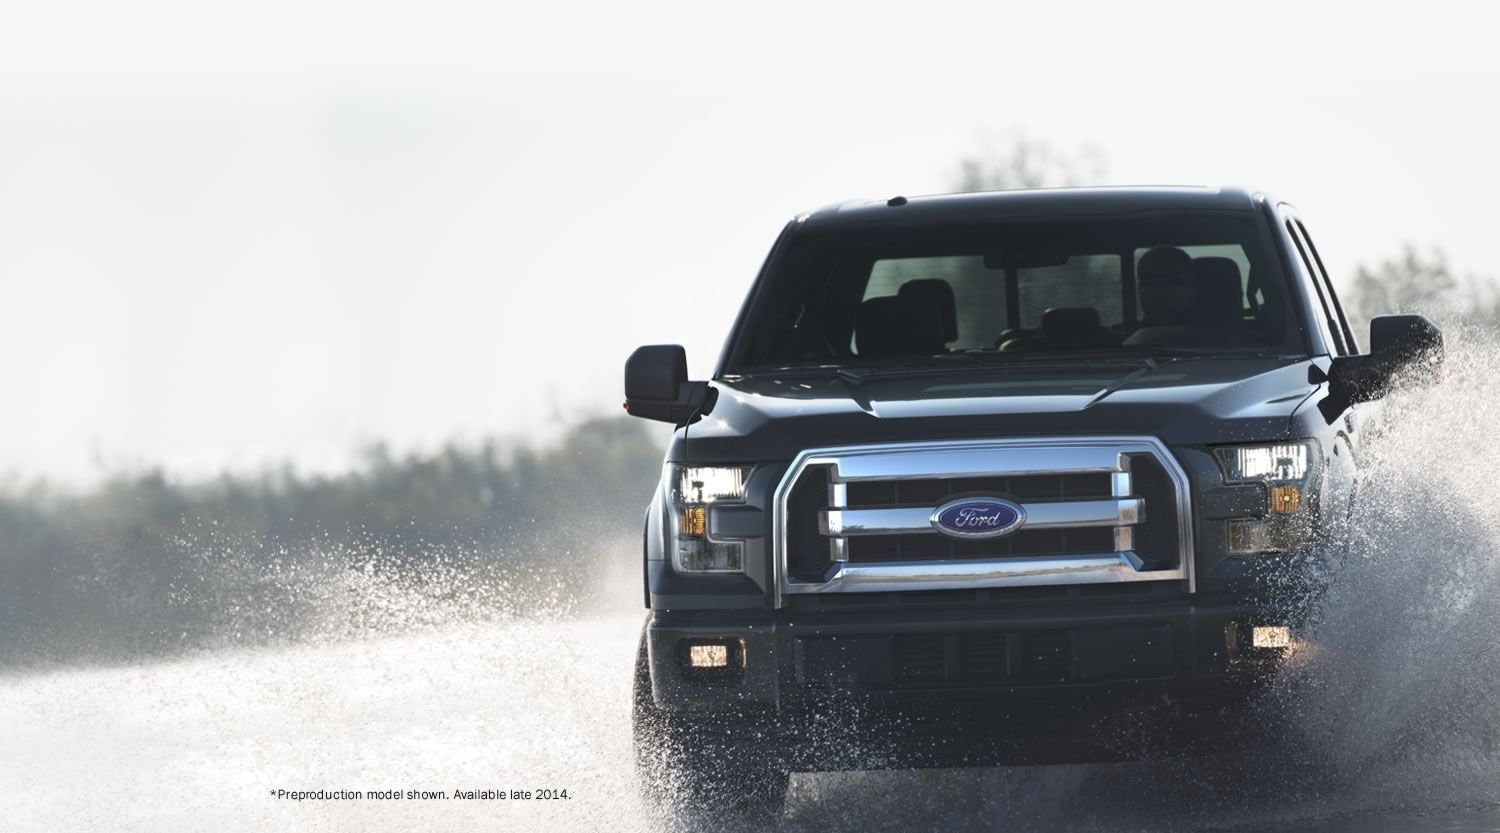 2015 Ford F150 Pickup Truck The Future of Tough Ford